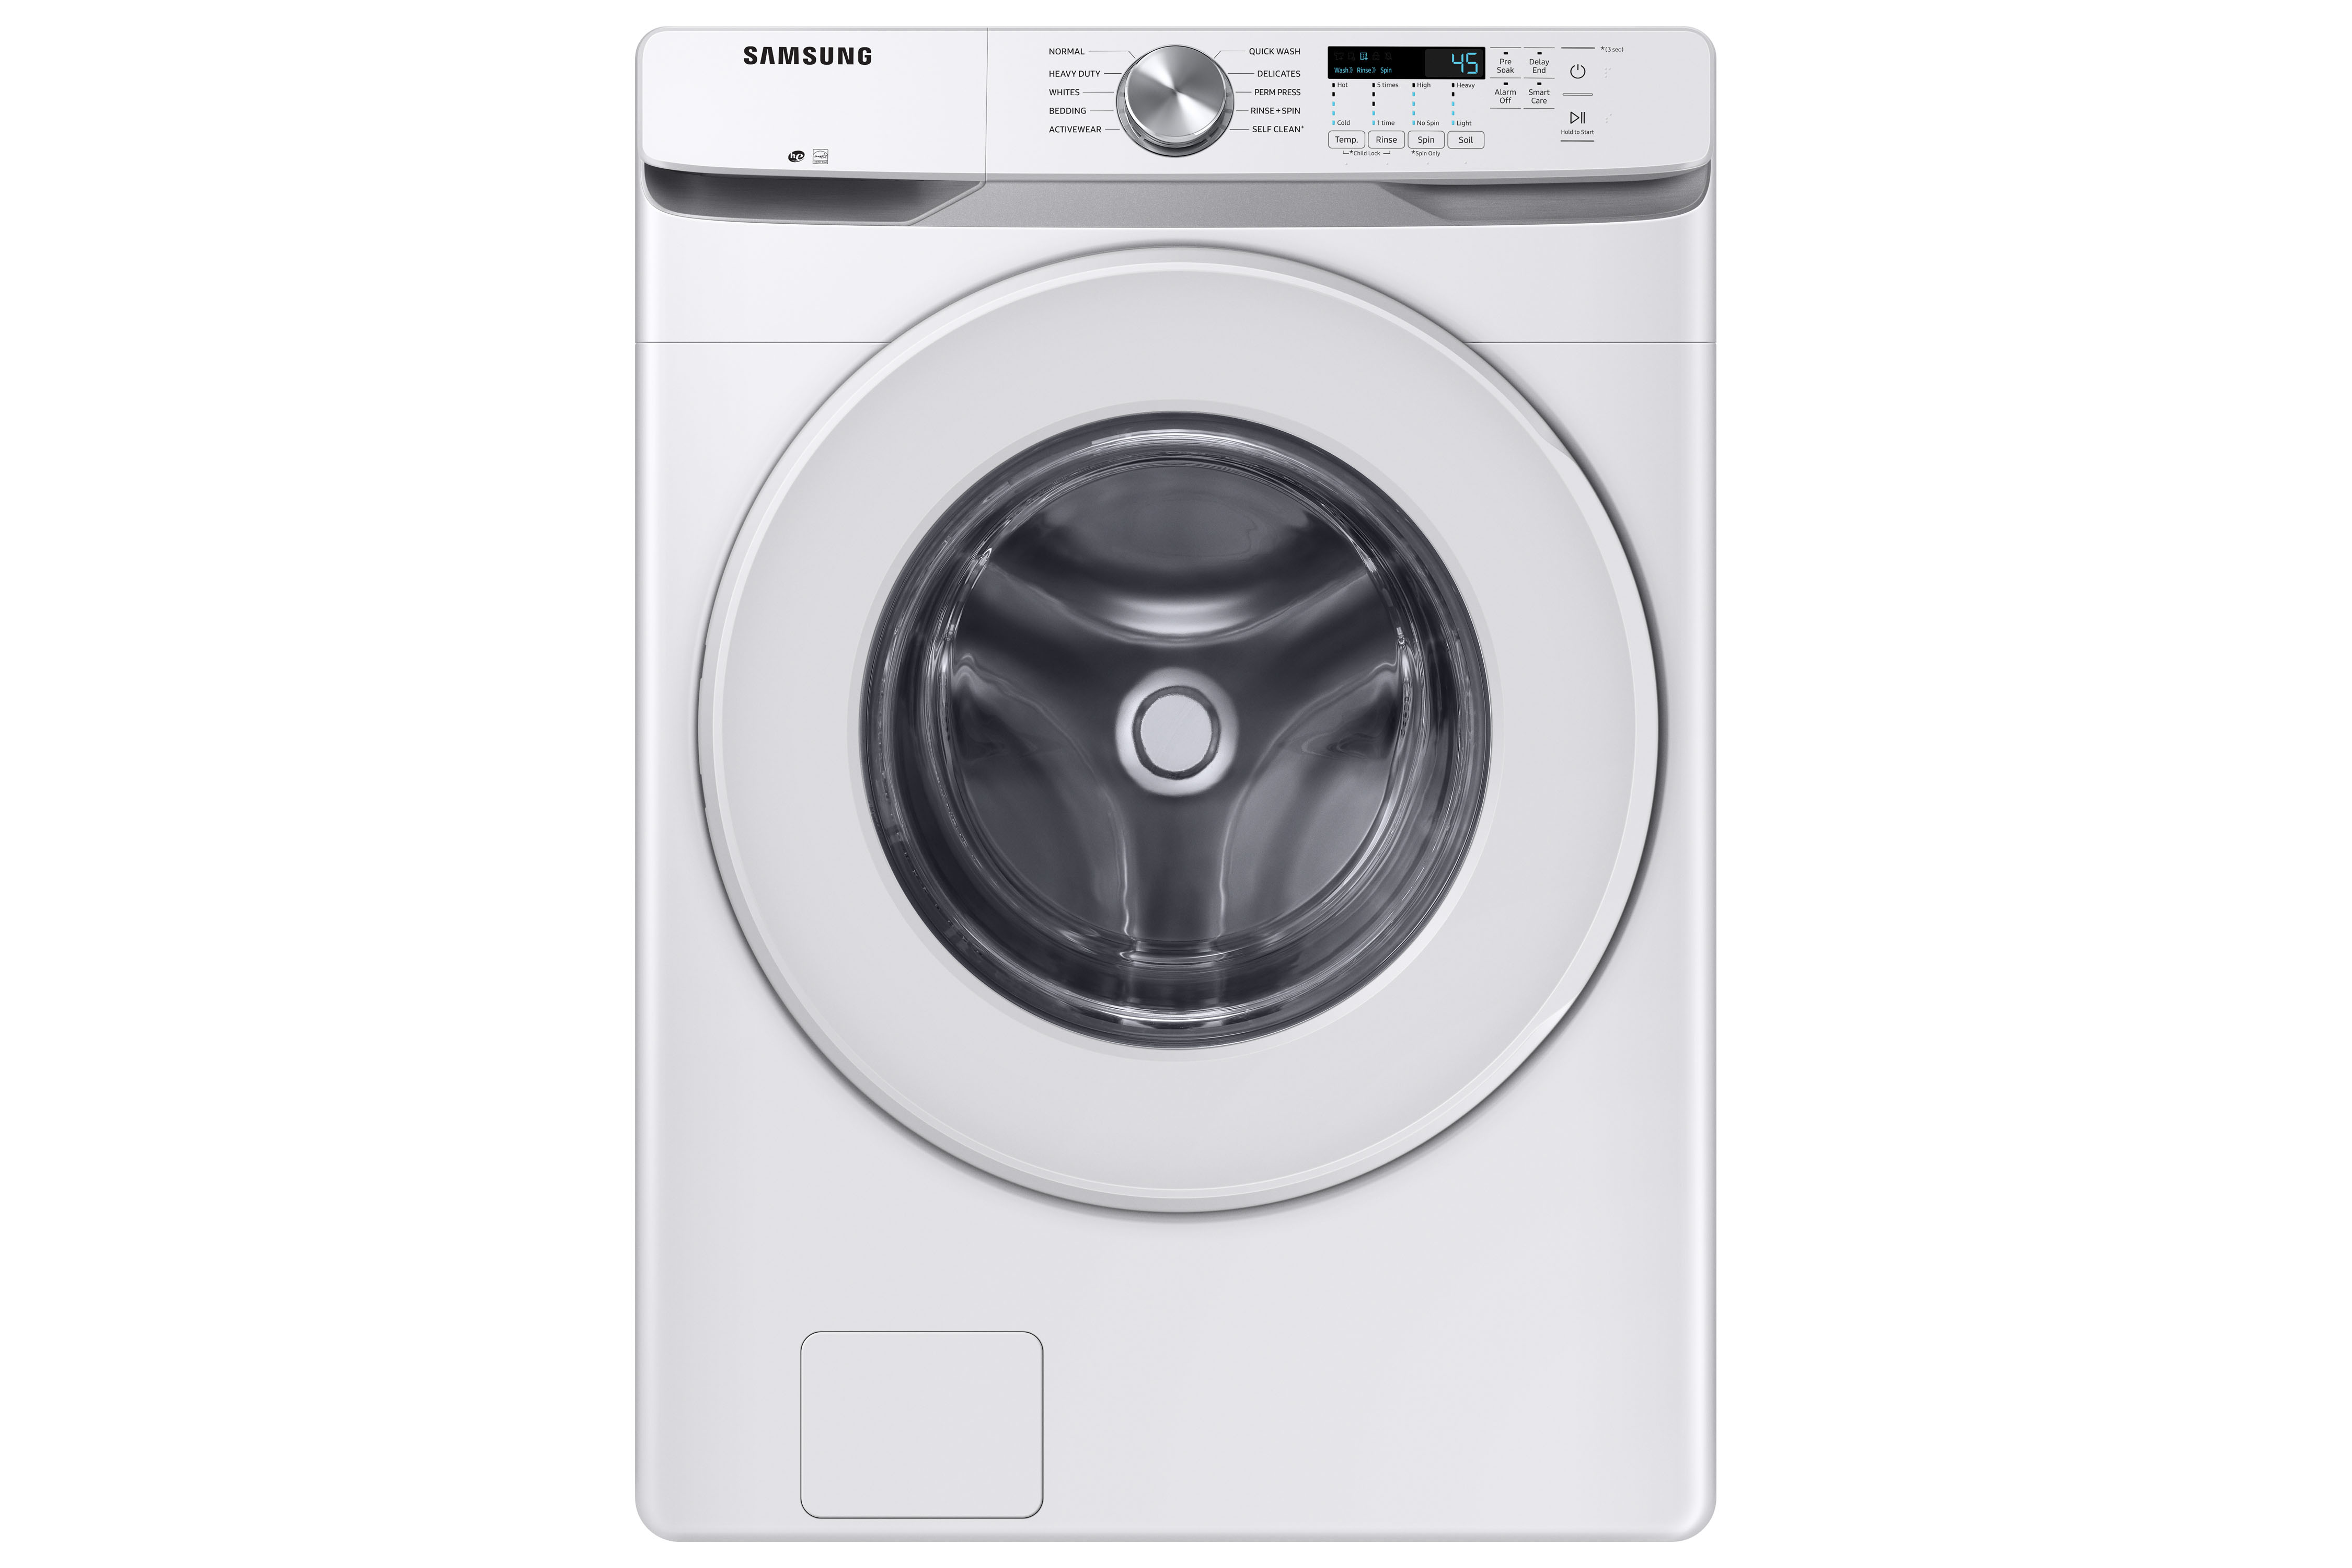 Samsung Washer in White color showcased by Corbeil Electro Store